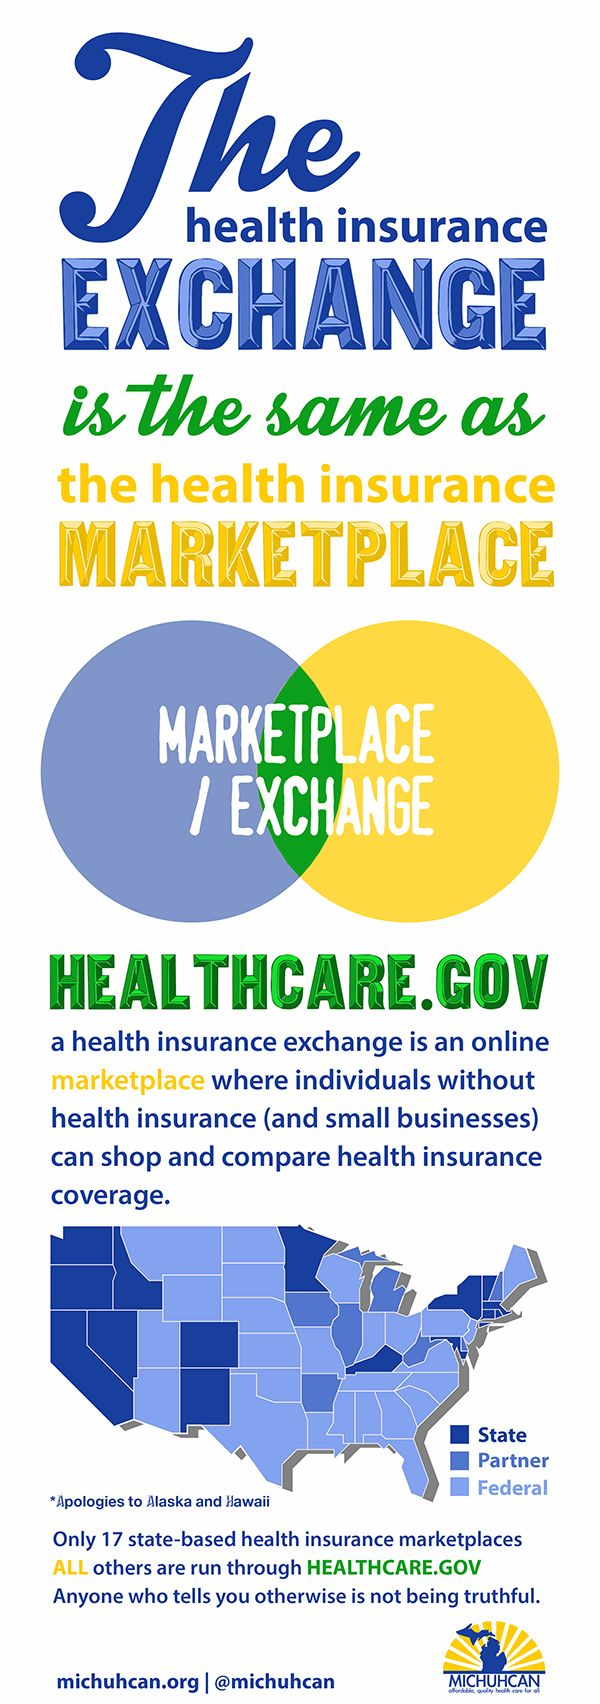 10 best images about Health Insurance on Pinterest ... Marketplace Healthcare